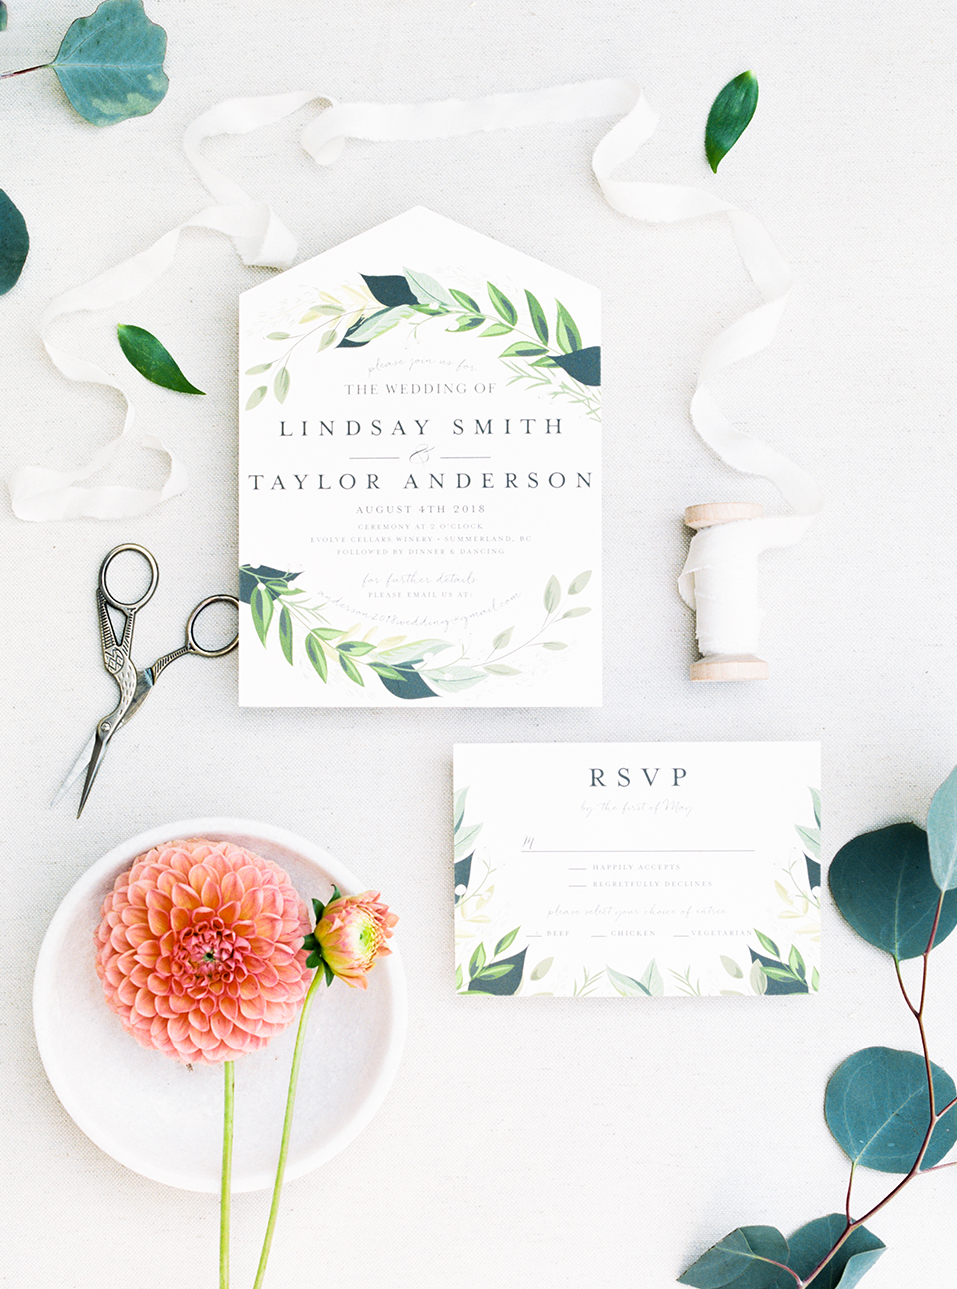 Green & white fine art wedding invitation